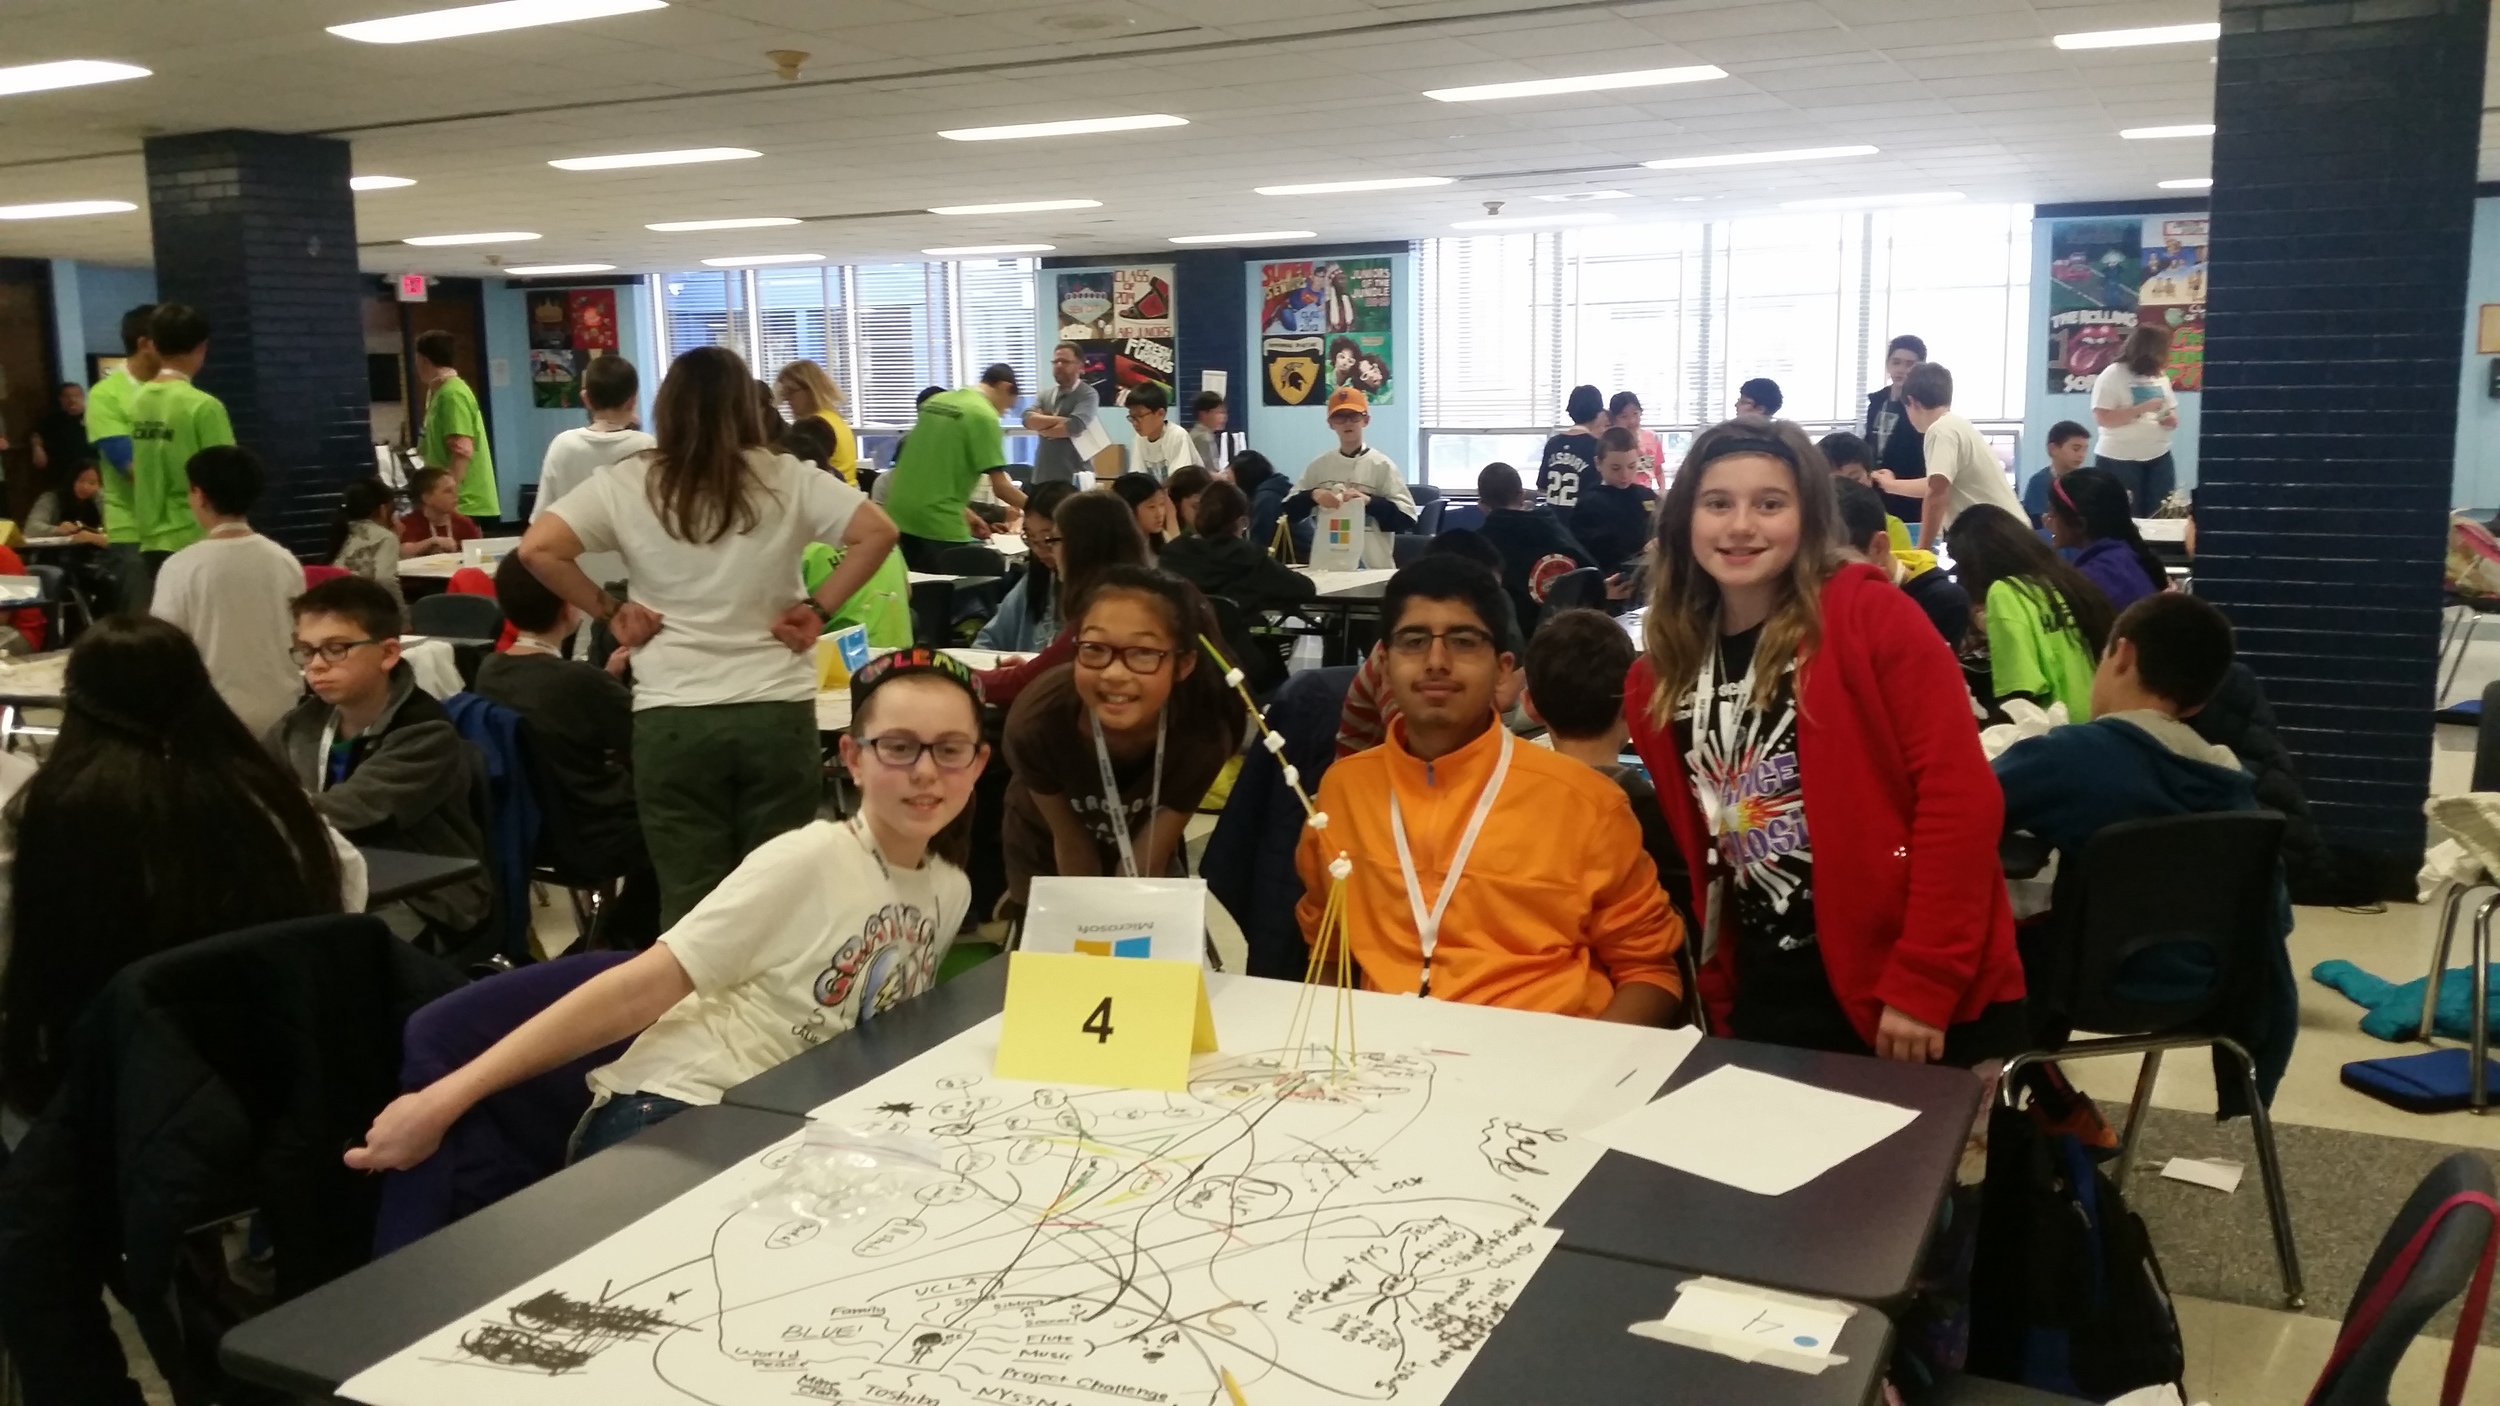 Student team poses for a photo during our mind mapping session, during which students use visual representations of their identity to introduce themselves to one another and get comfortable with their teammates.